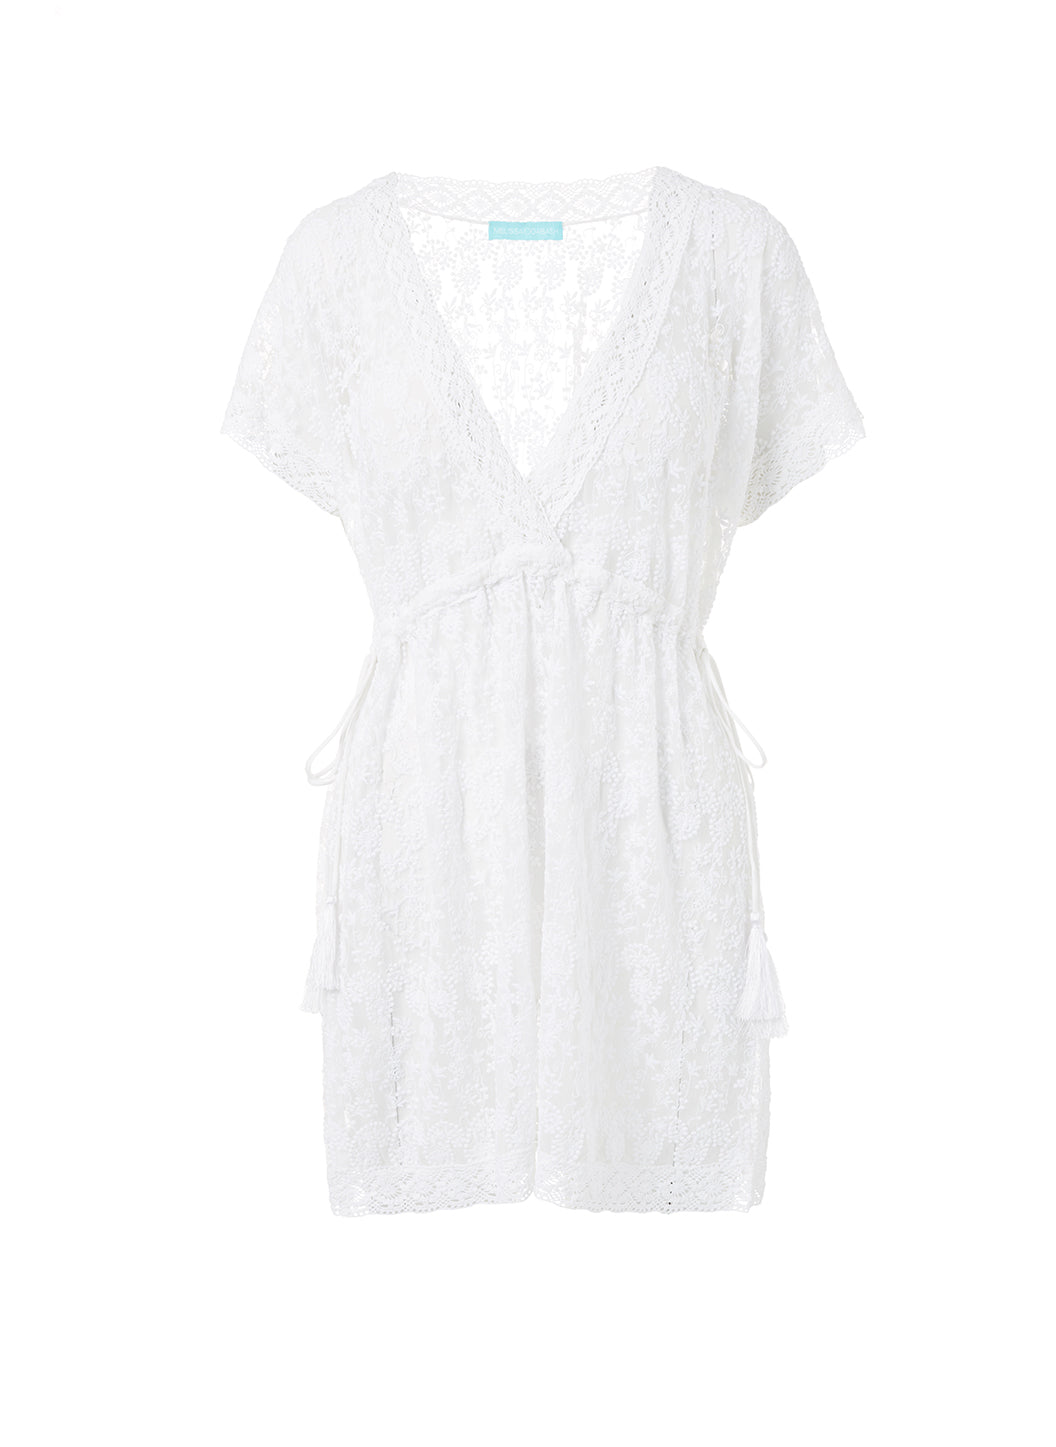 Adelina White Embroidered Short Tie-Side Beach Dress - Melissa Odabash Beachwear